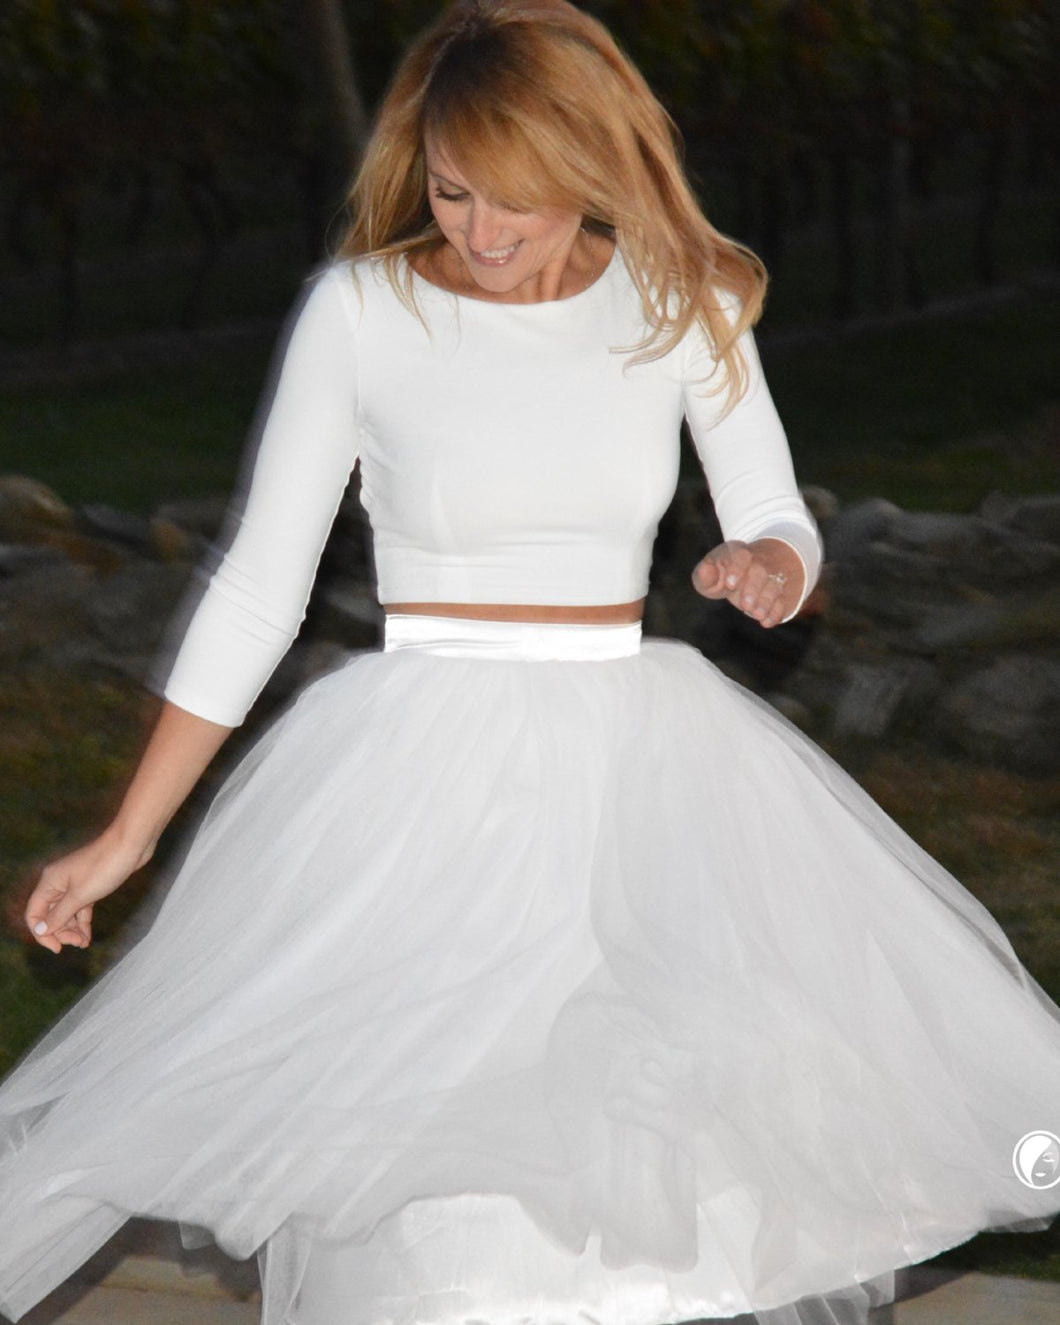 Clarisa Puffy Tulle Skirt (Fitted Waistband) - C'est Ça New York